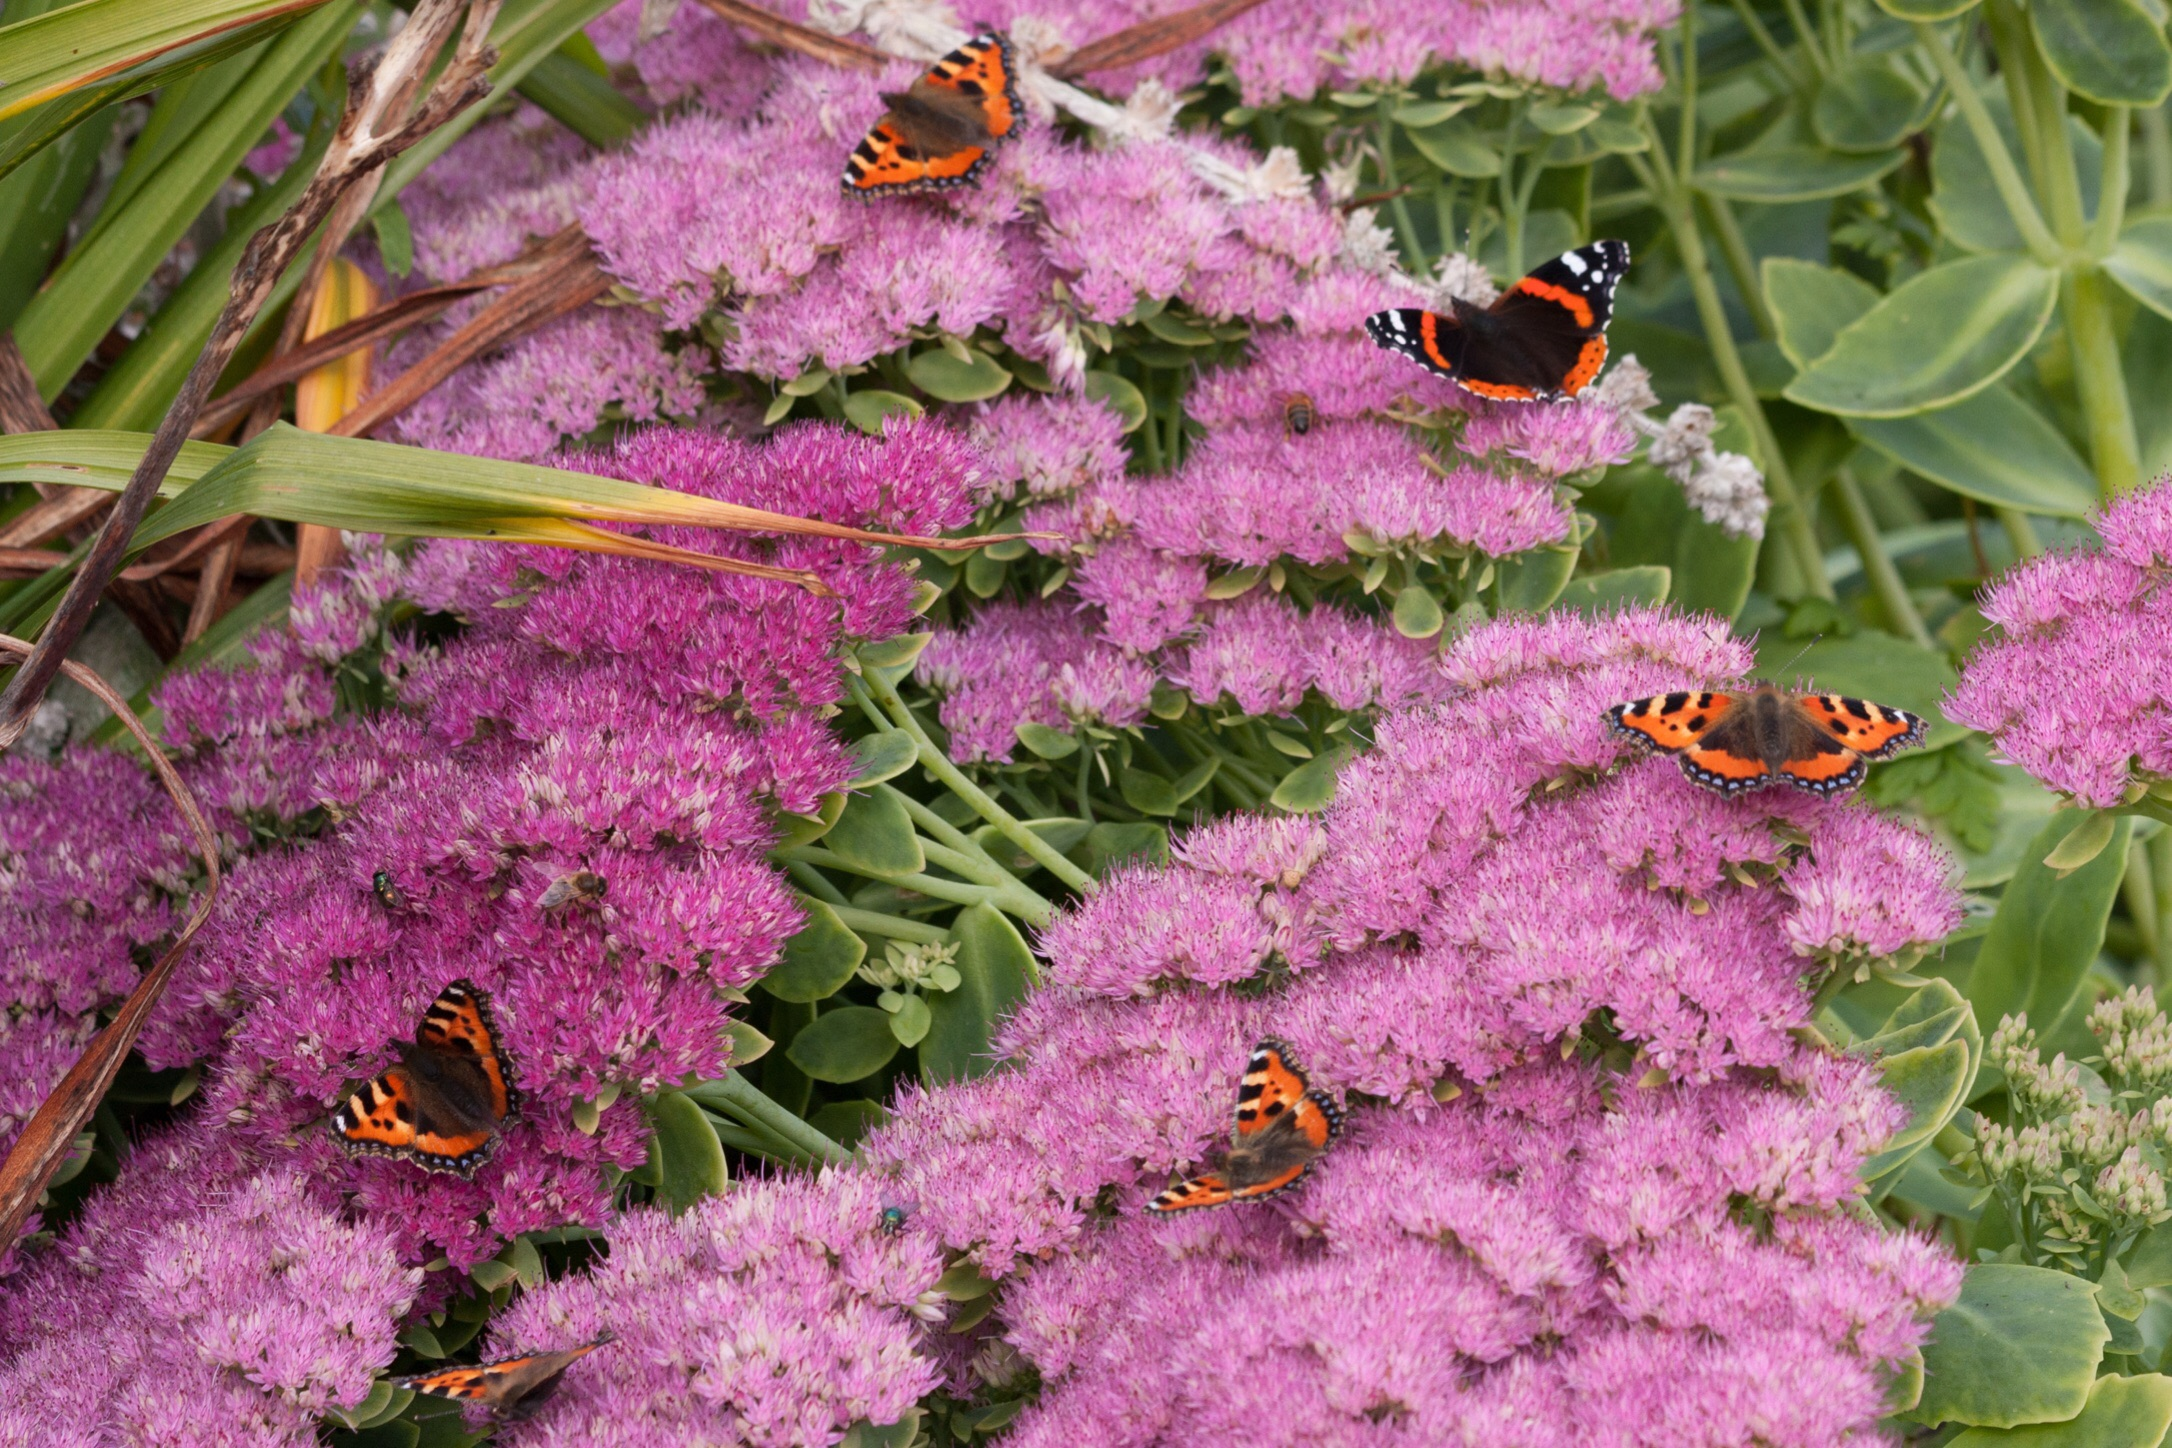 Ring a ring of fluttering wings : Small Tortoiseshells dancing with a Red Admiral